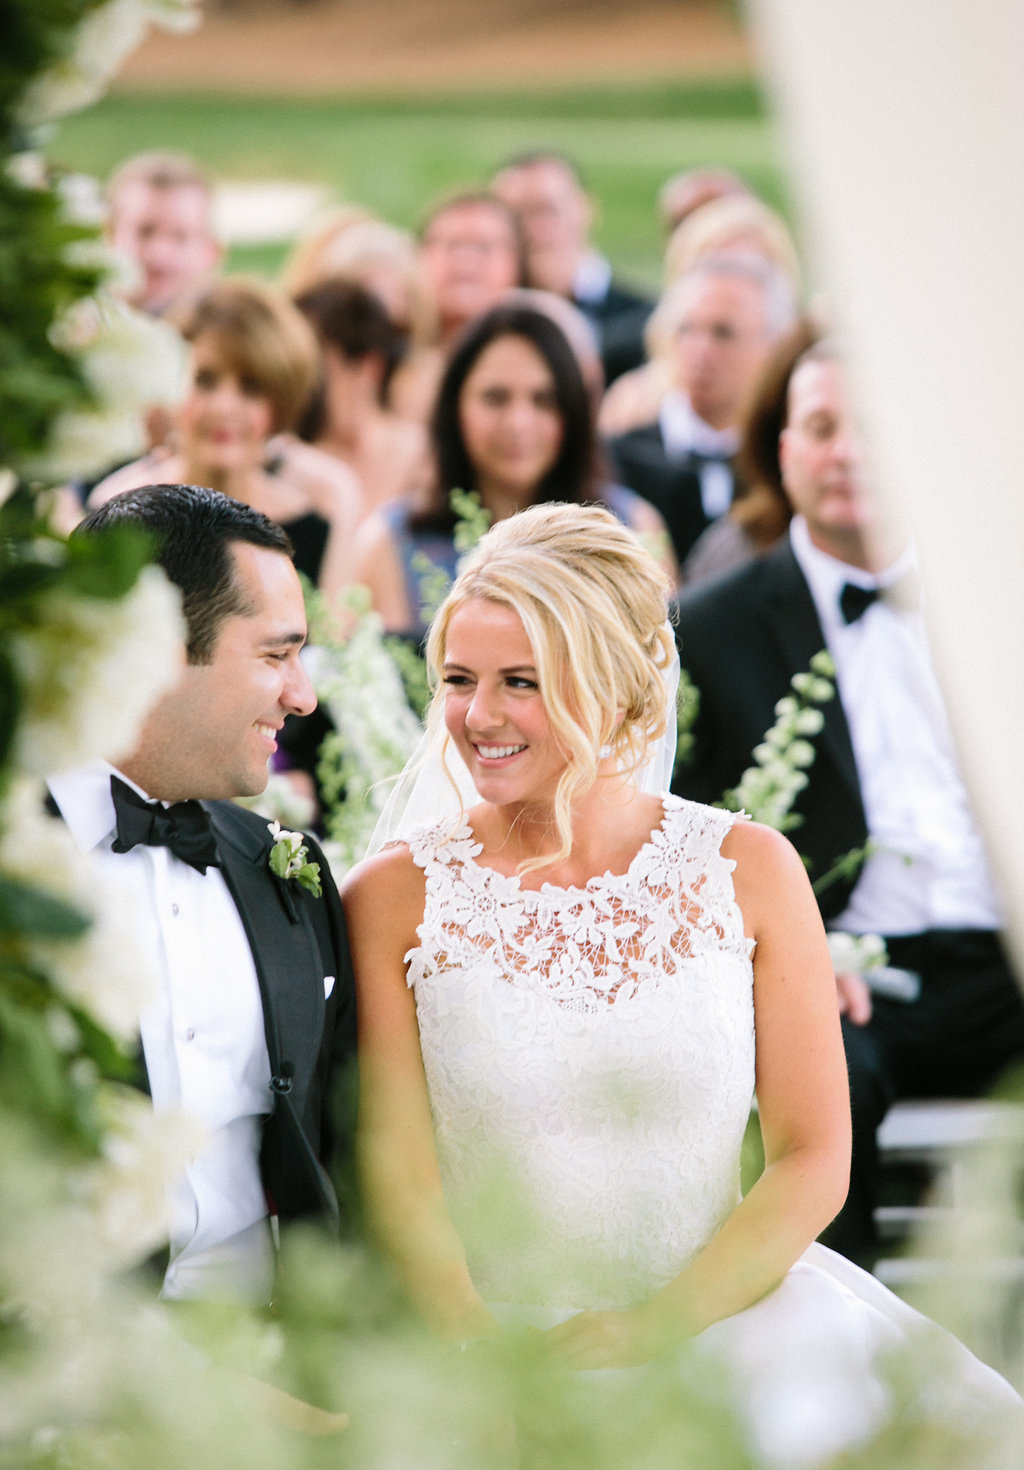 Katlin&Nawder-Ceremony-LindsayMaddenPhotography-72.jpg